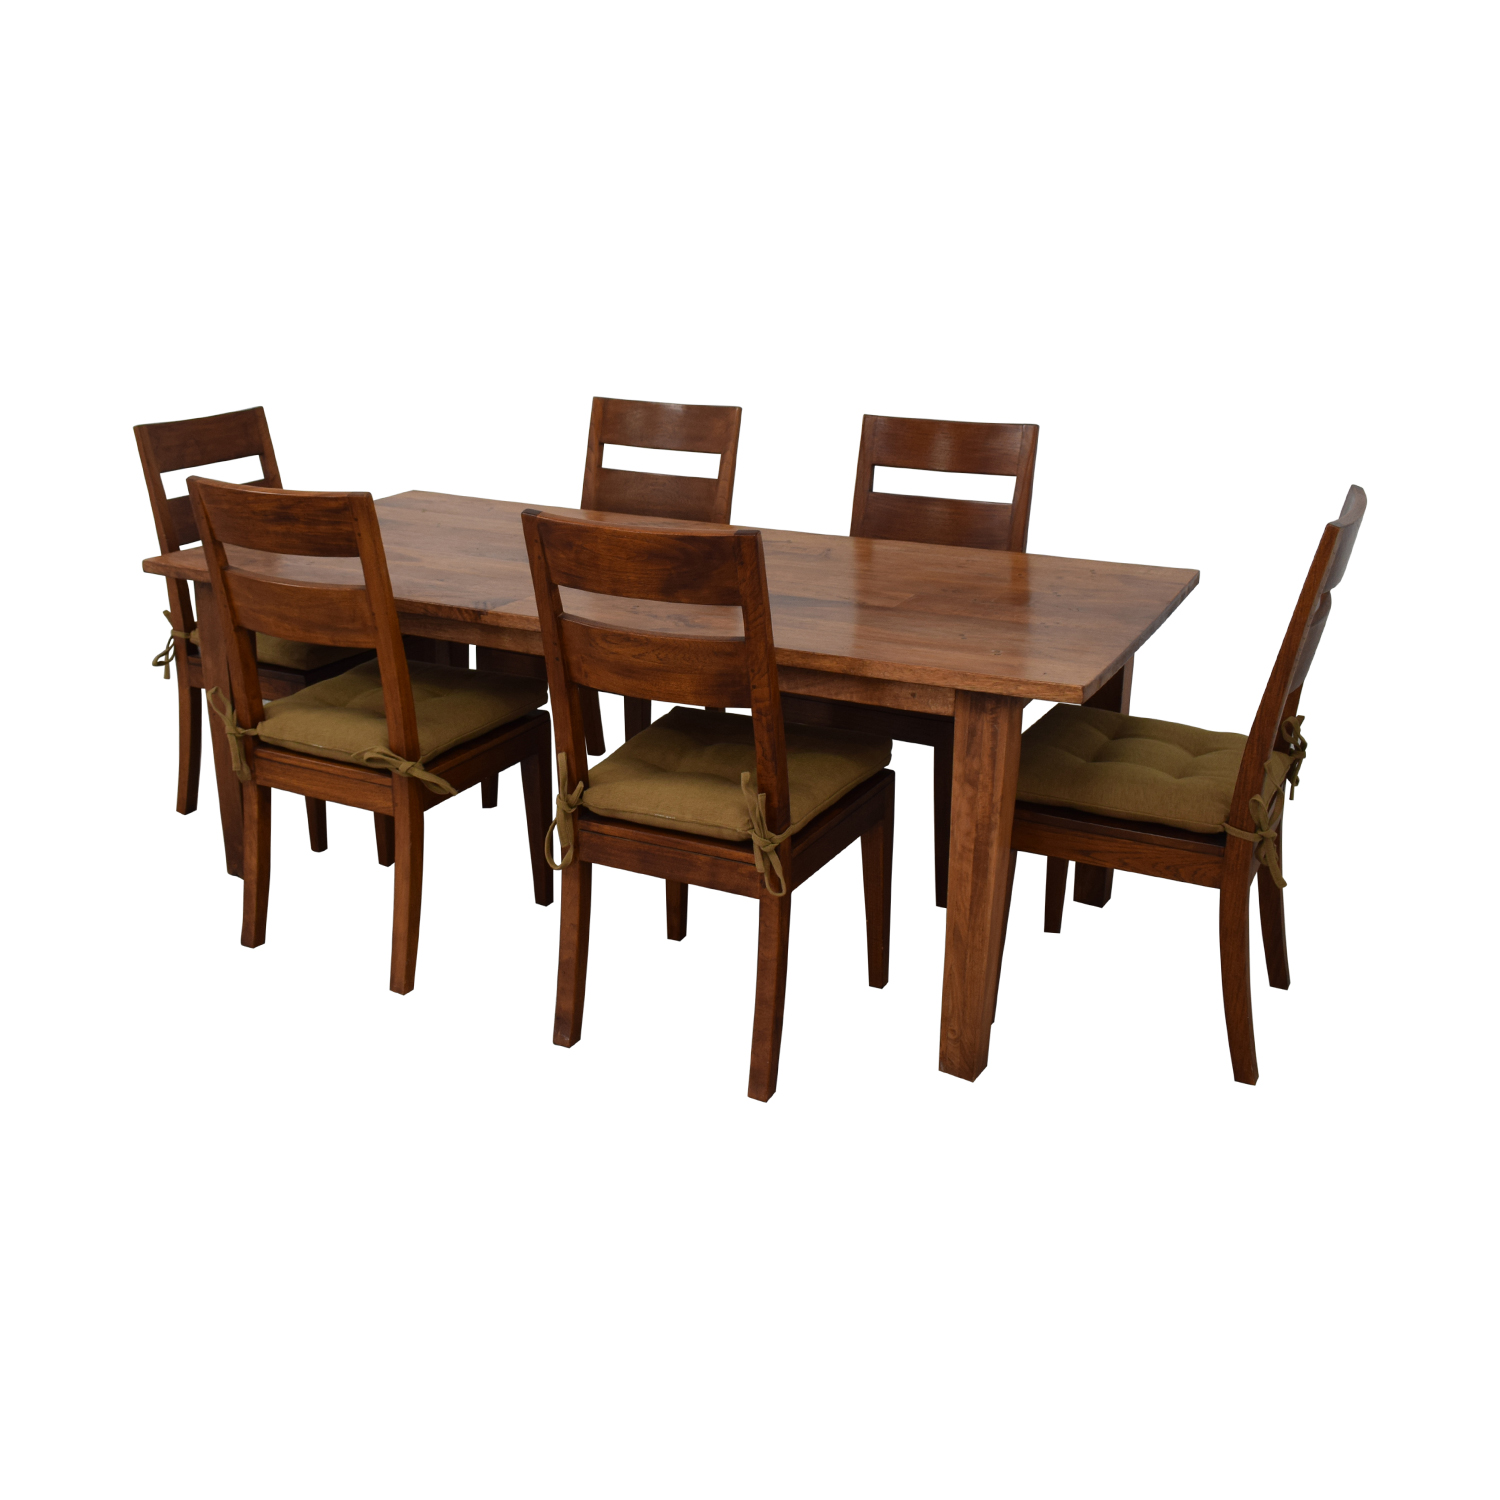 Crate & Barrel Basque Dining Table and Six Chairs Crate & Barrel